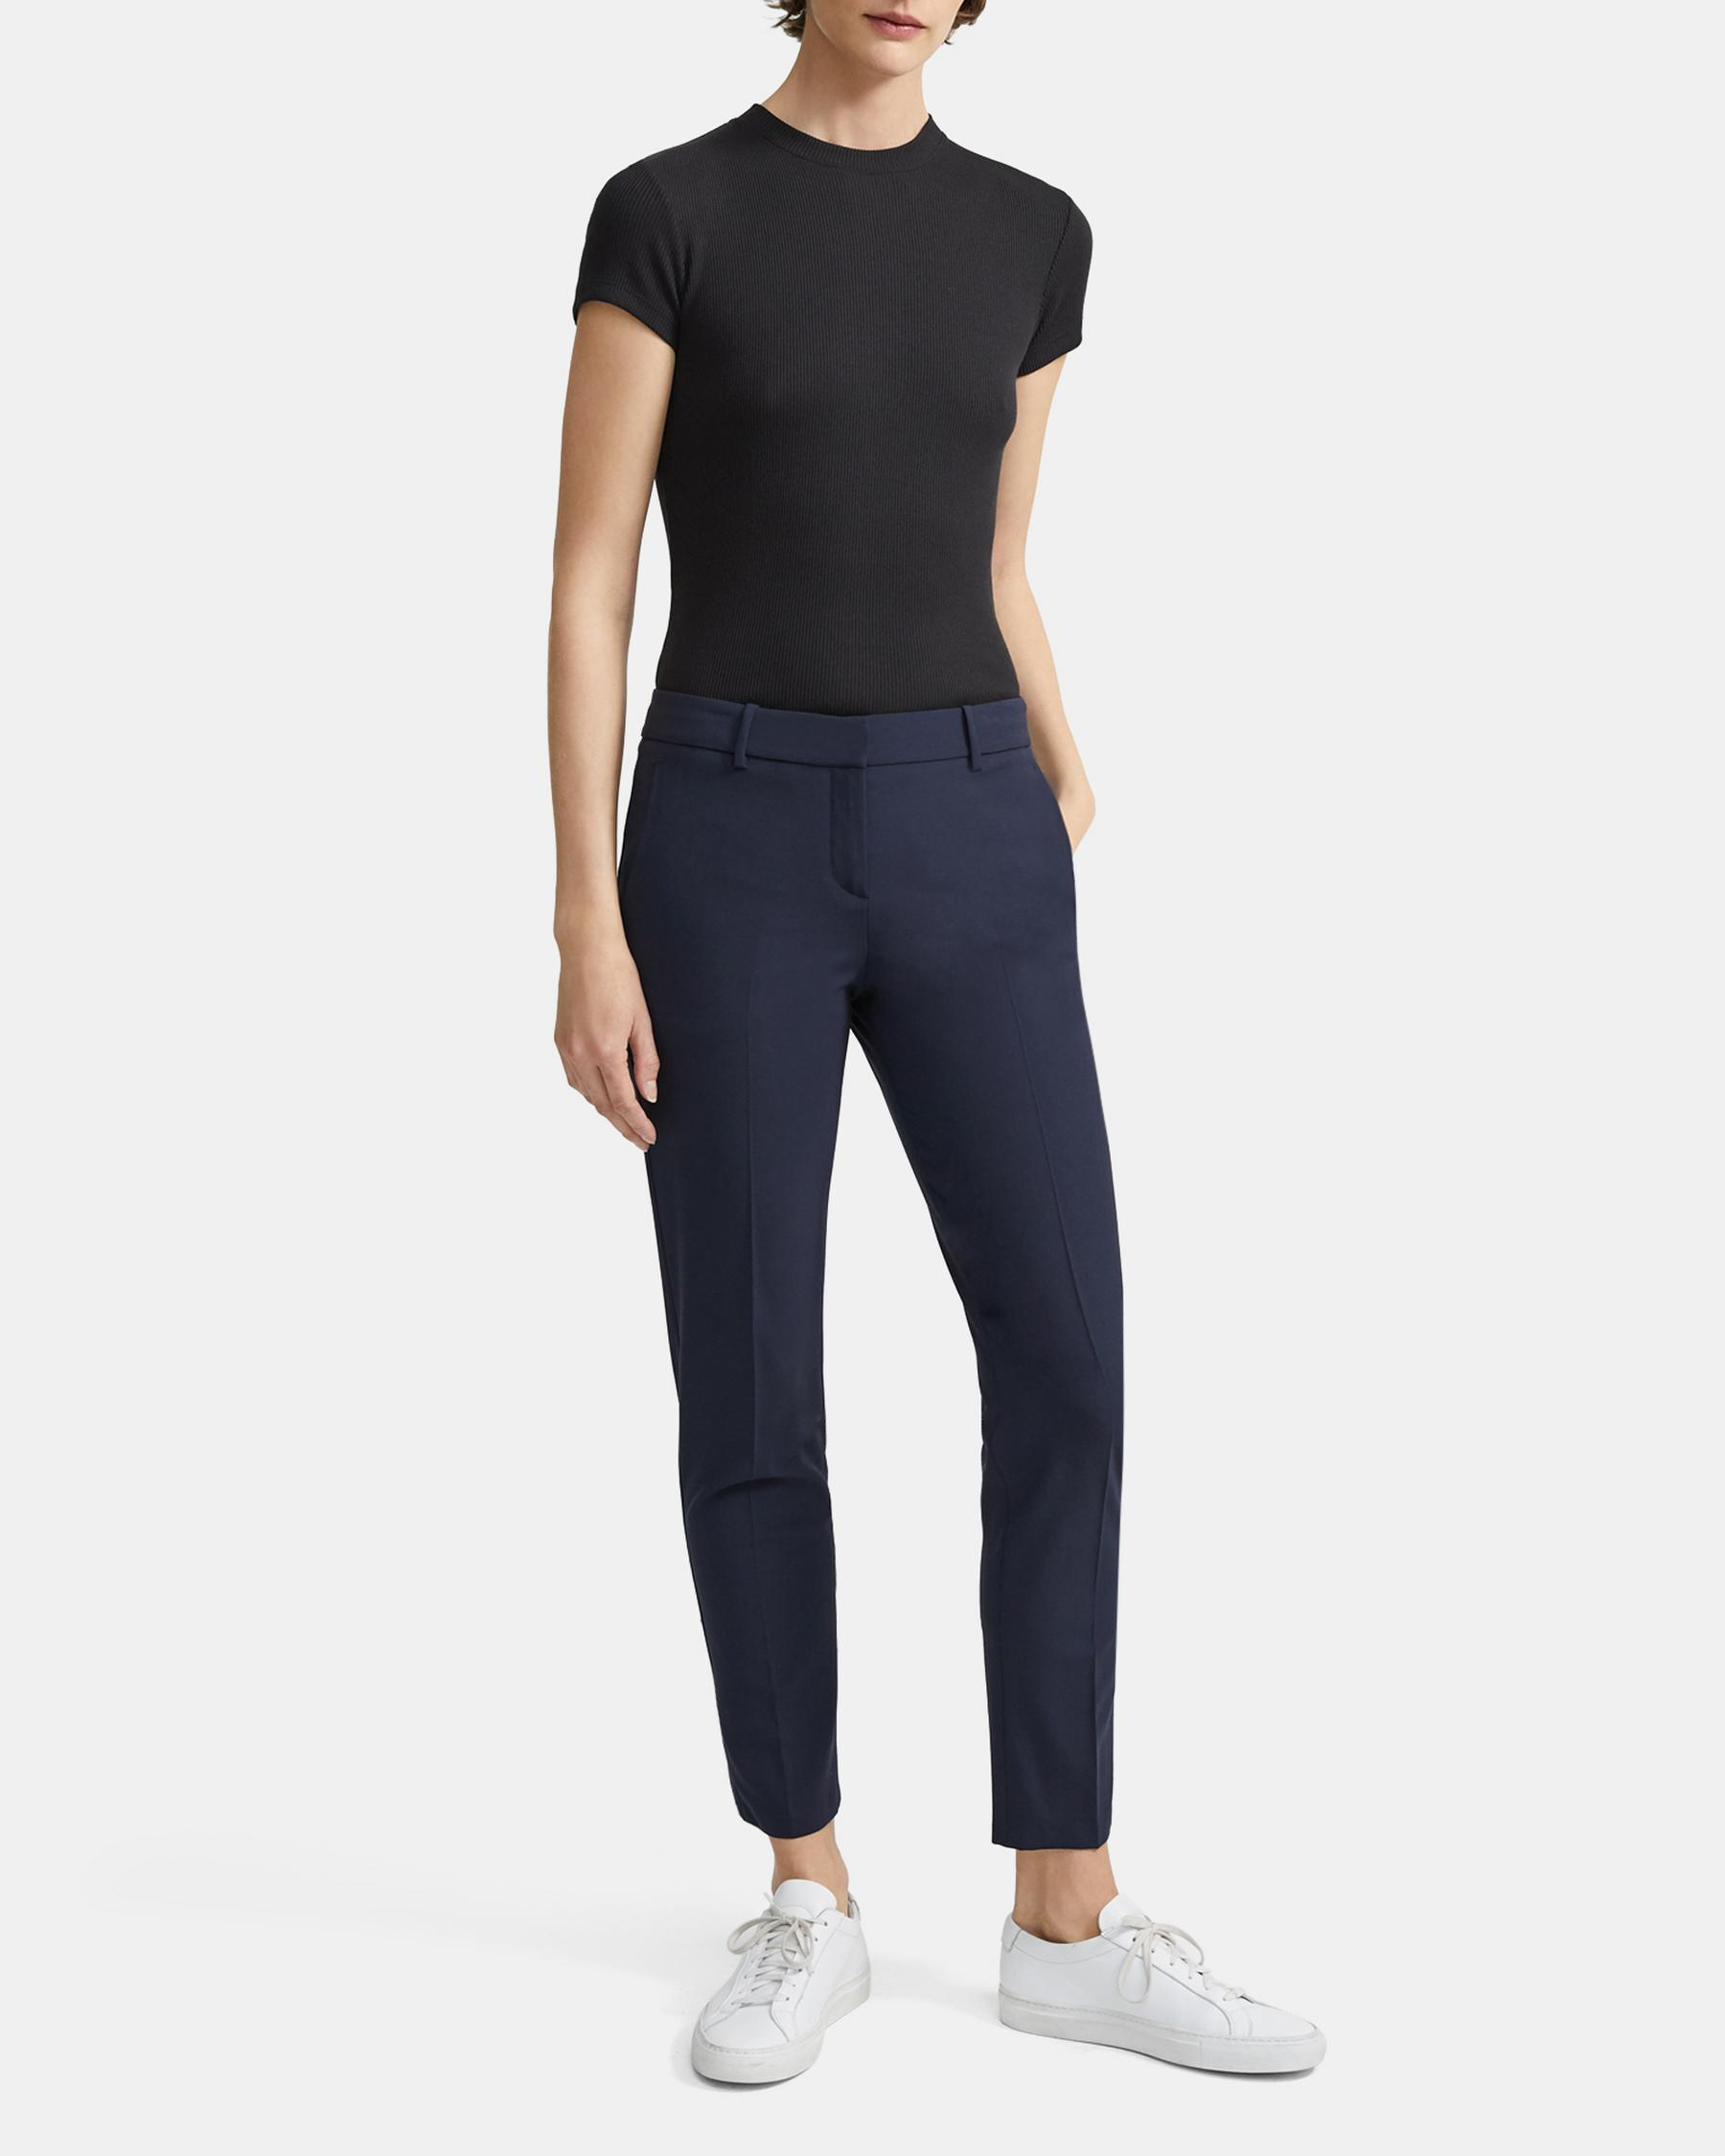 Classic Cropped Pant in Stretch Wool 4